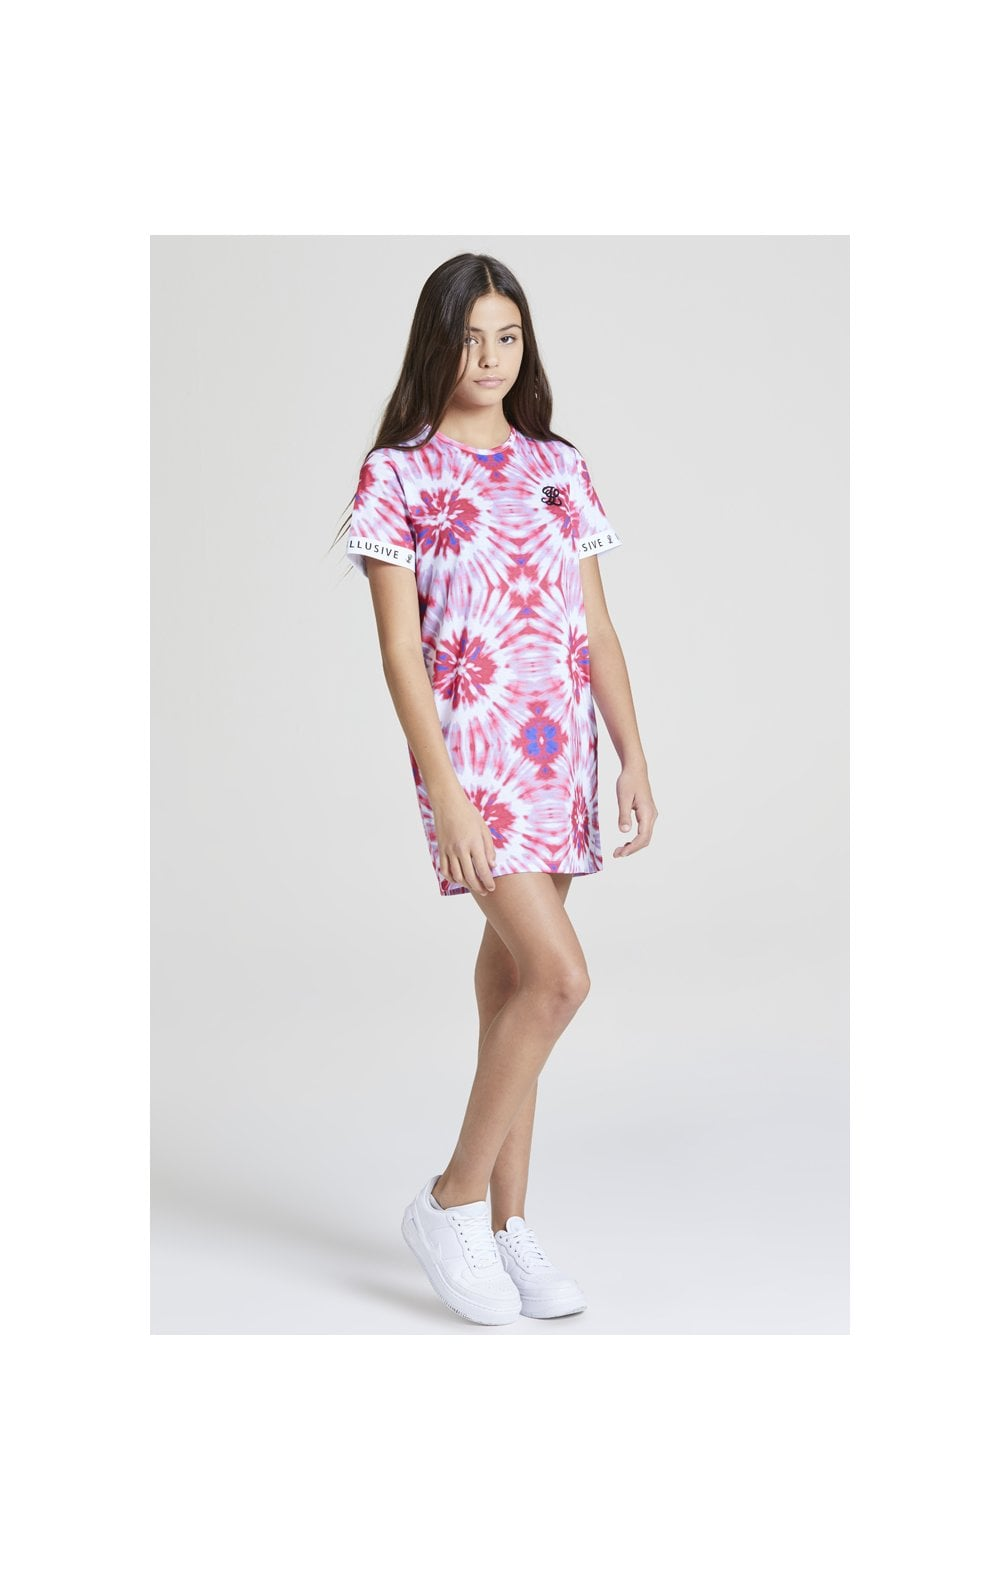 Illusive London Tie Dye T-Shirt Dress - Multi (3)